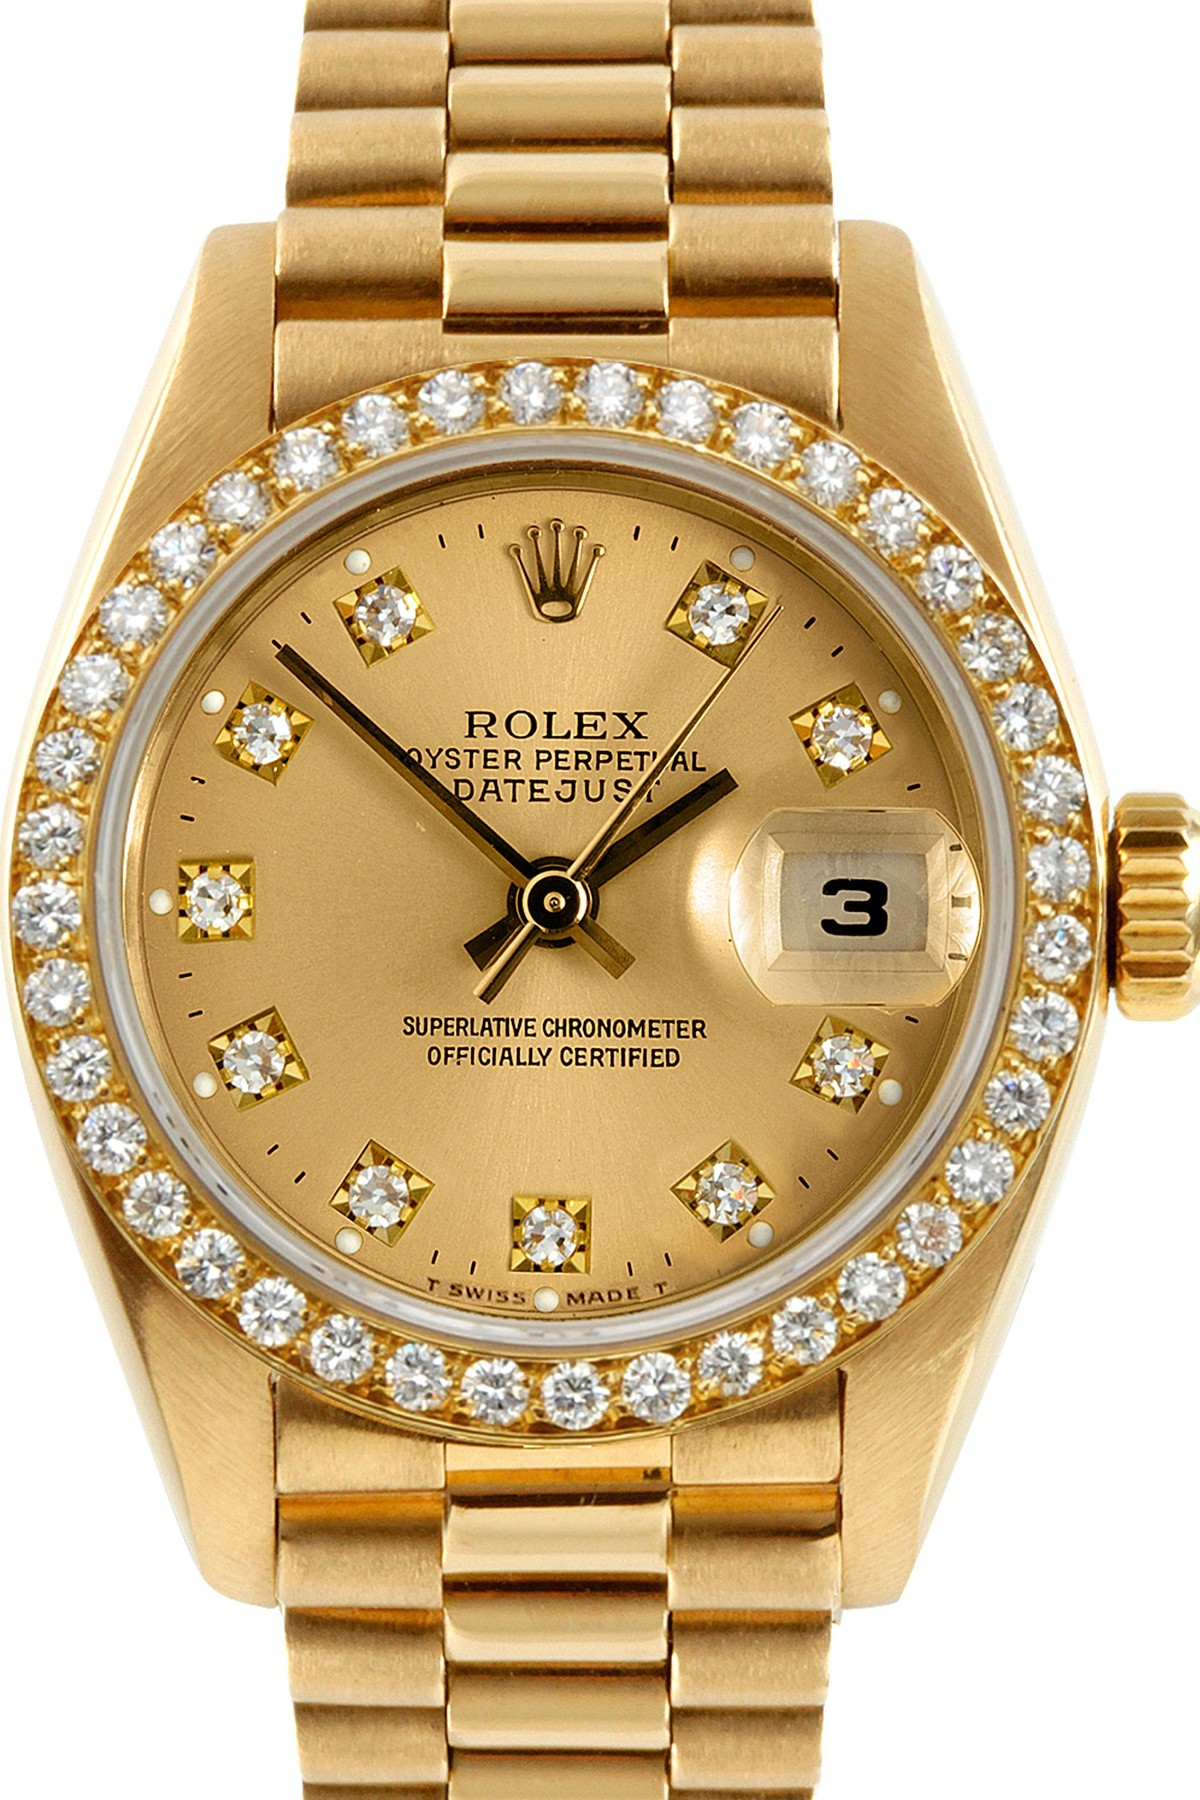 AAA+ Rolex Replica Watches, Fake Rolex Watches For Sale